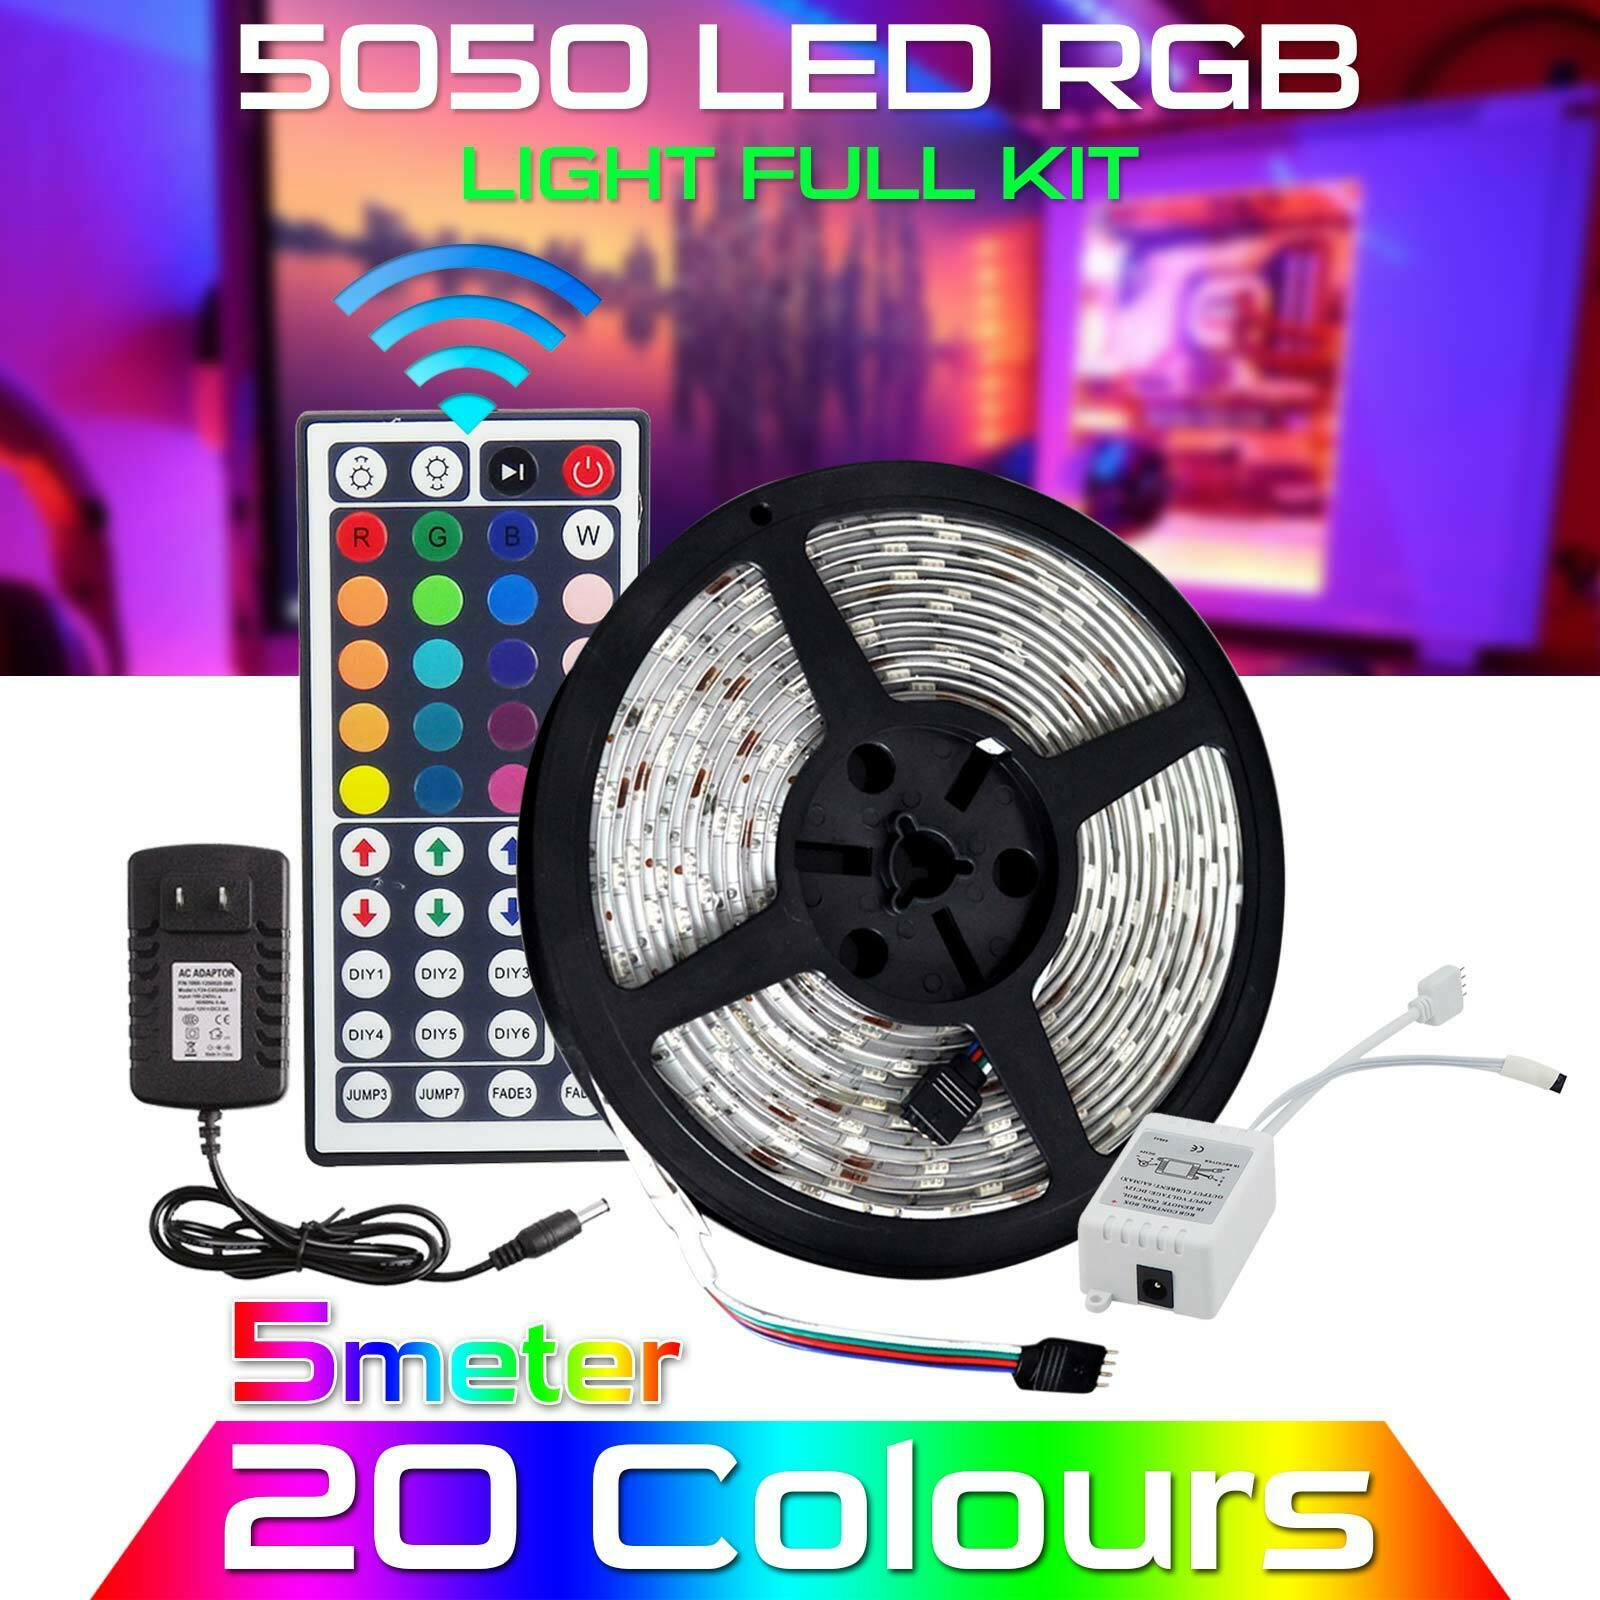 Led Strip Light Smd 3528 Flexible Tape 300led Dc12v Indoor Outdoor Lighting Rope Led Strip Lighting Rgb Led Strip Lights Waterproof Led